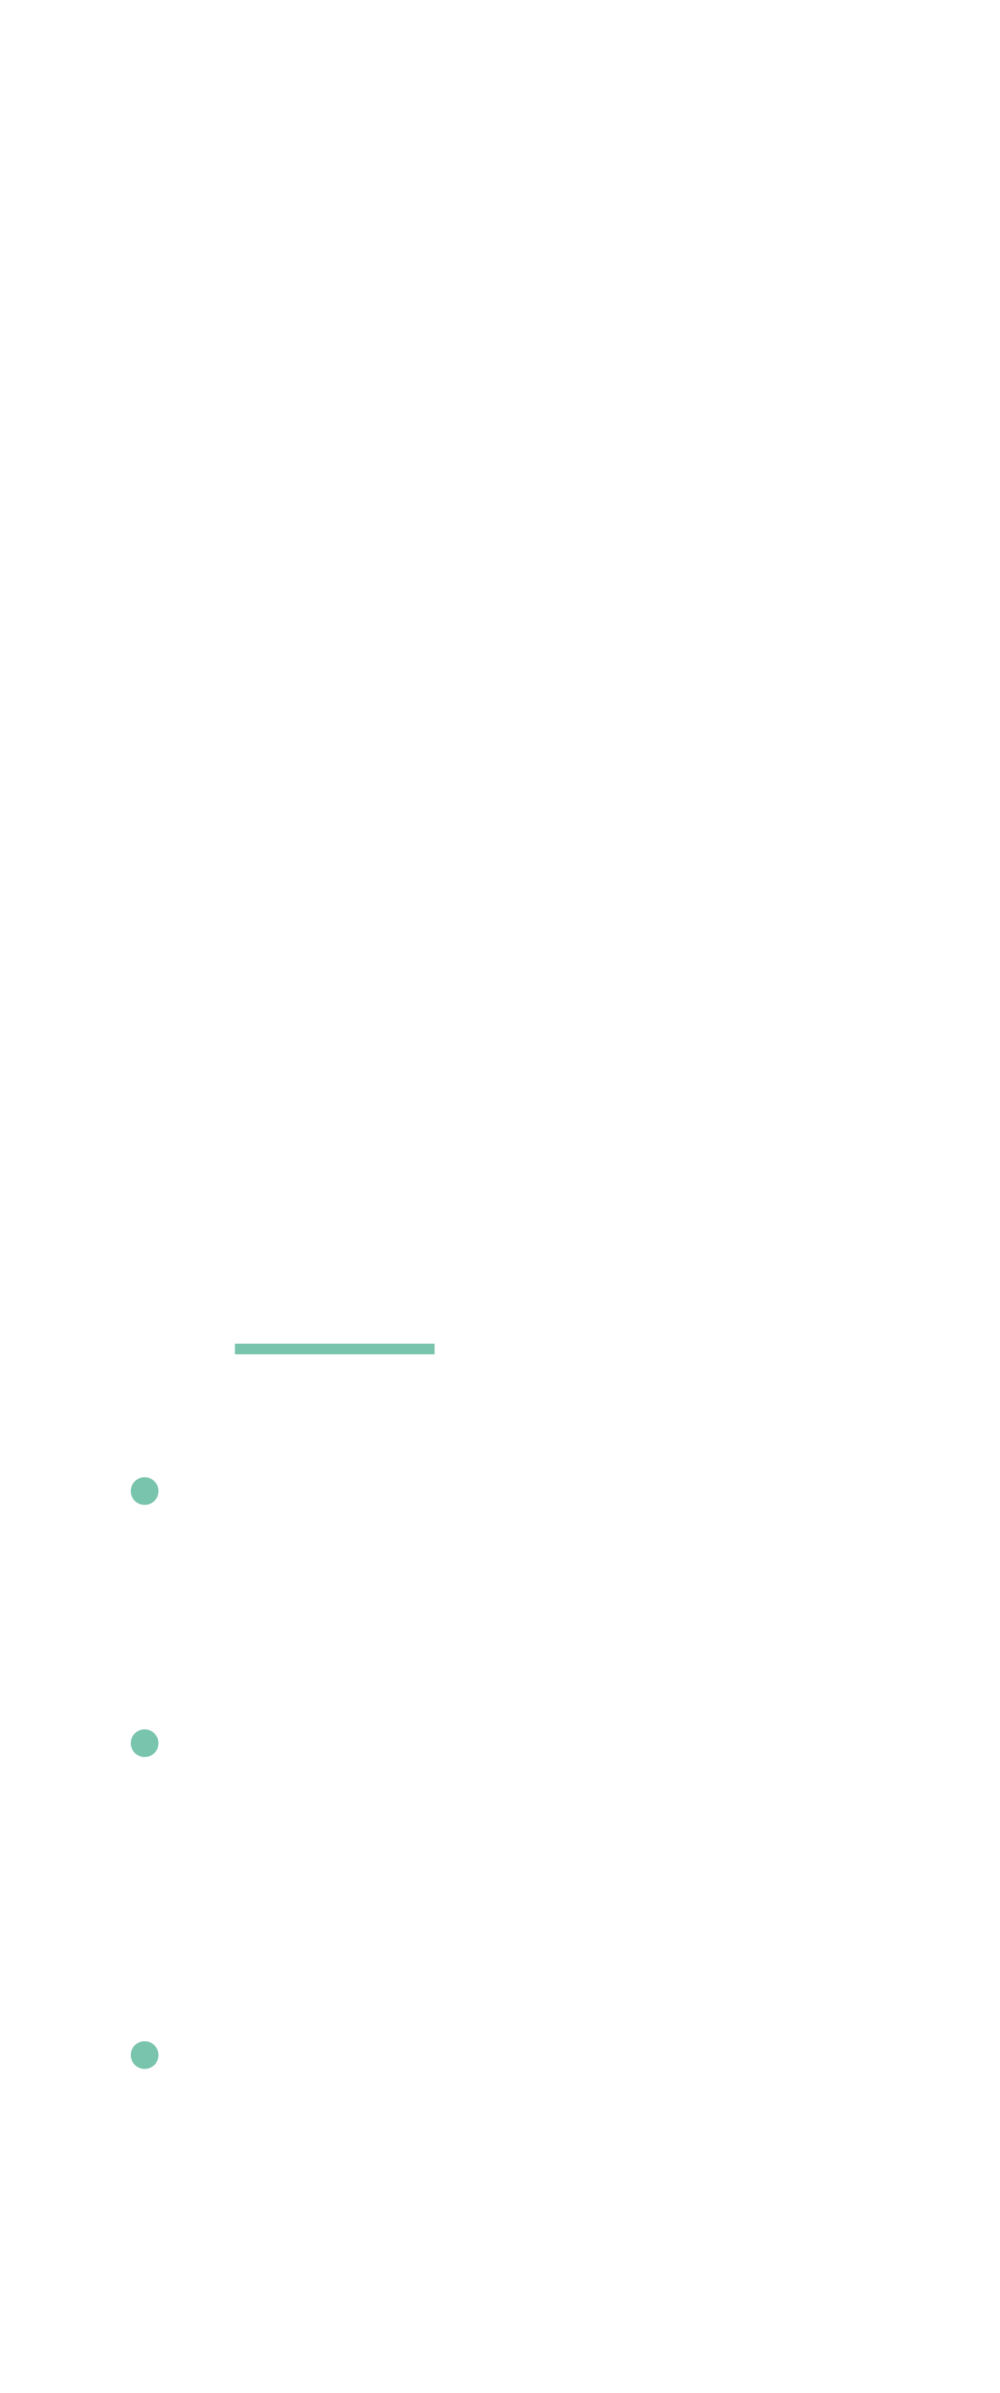 2 Secuirty, safety and comfortable work enviroment-12.png